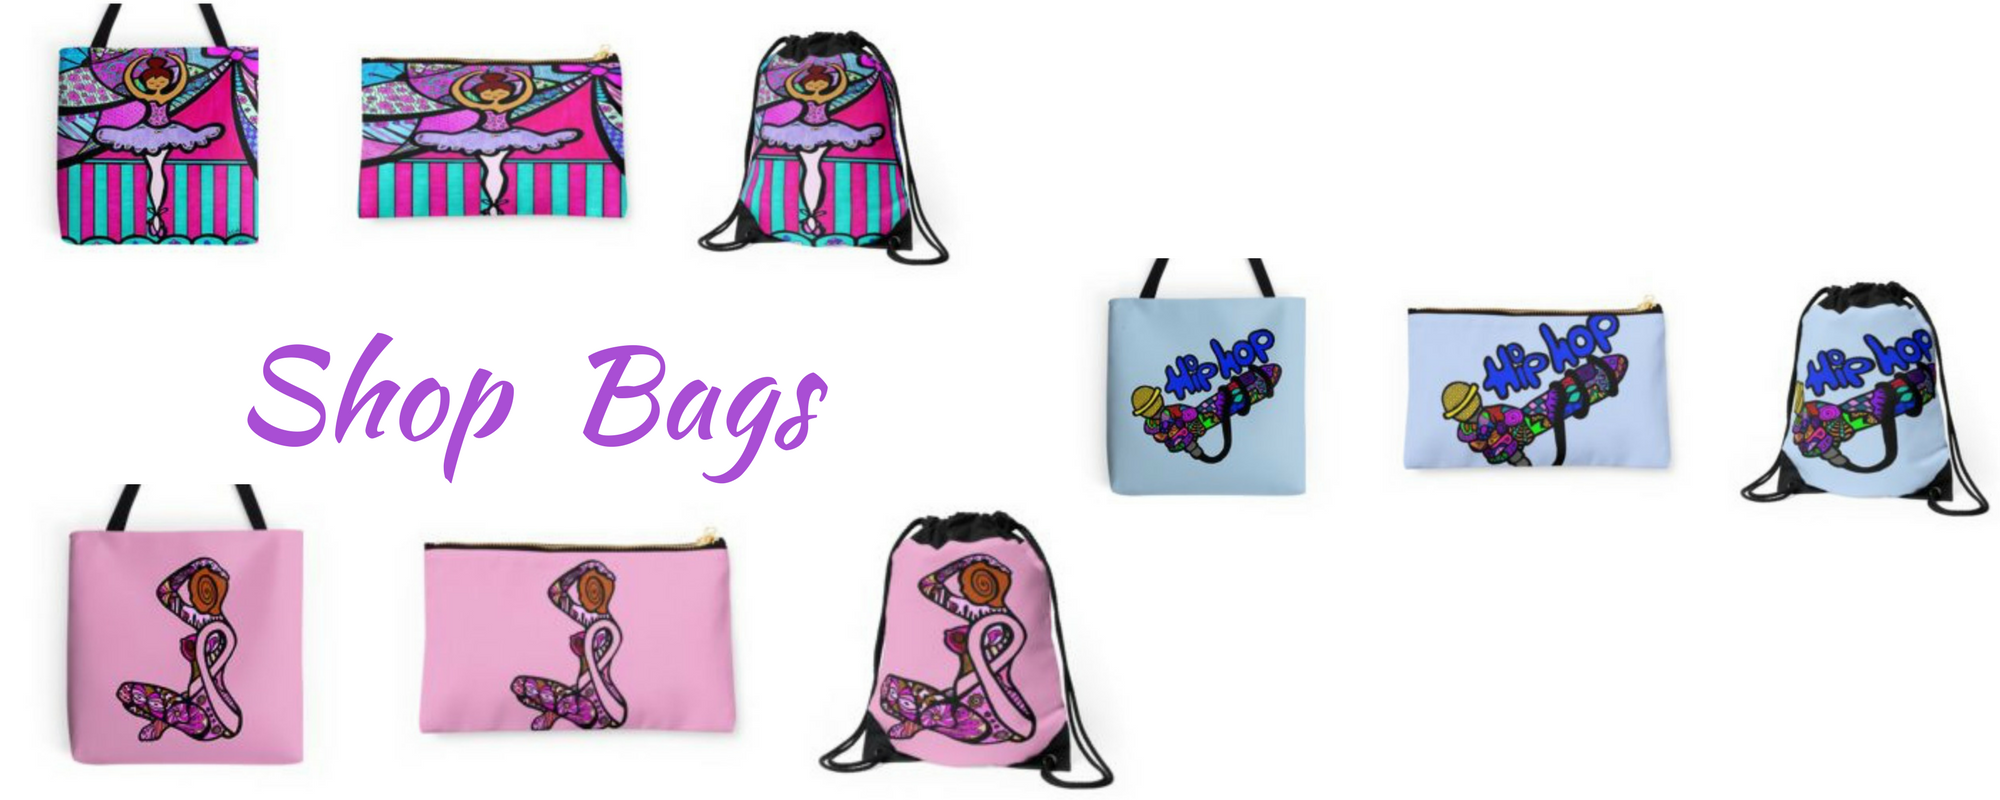 Shop for bags